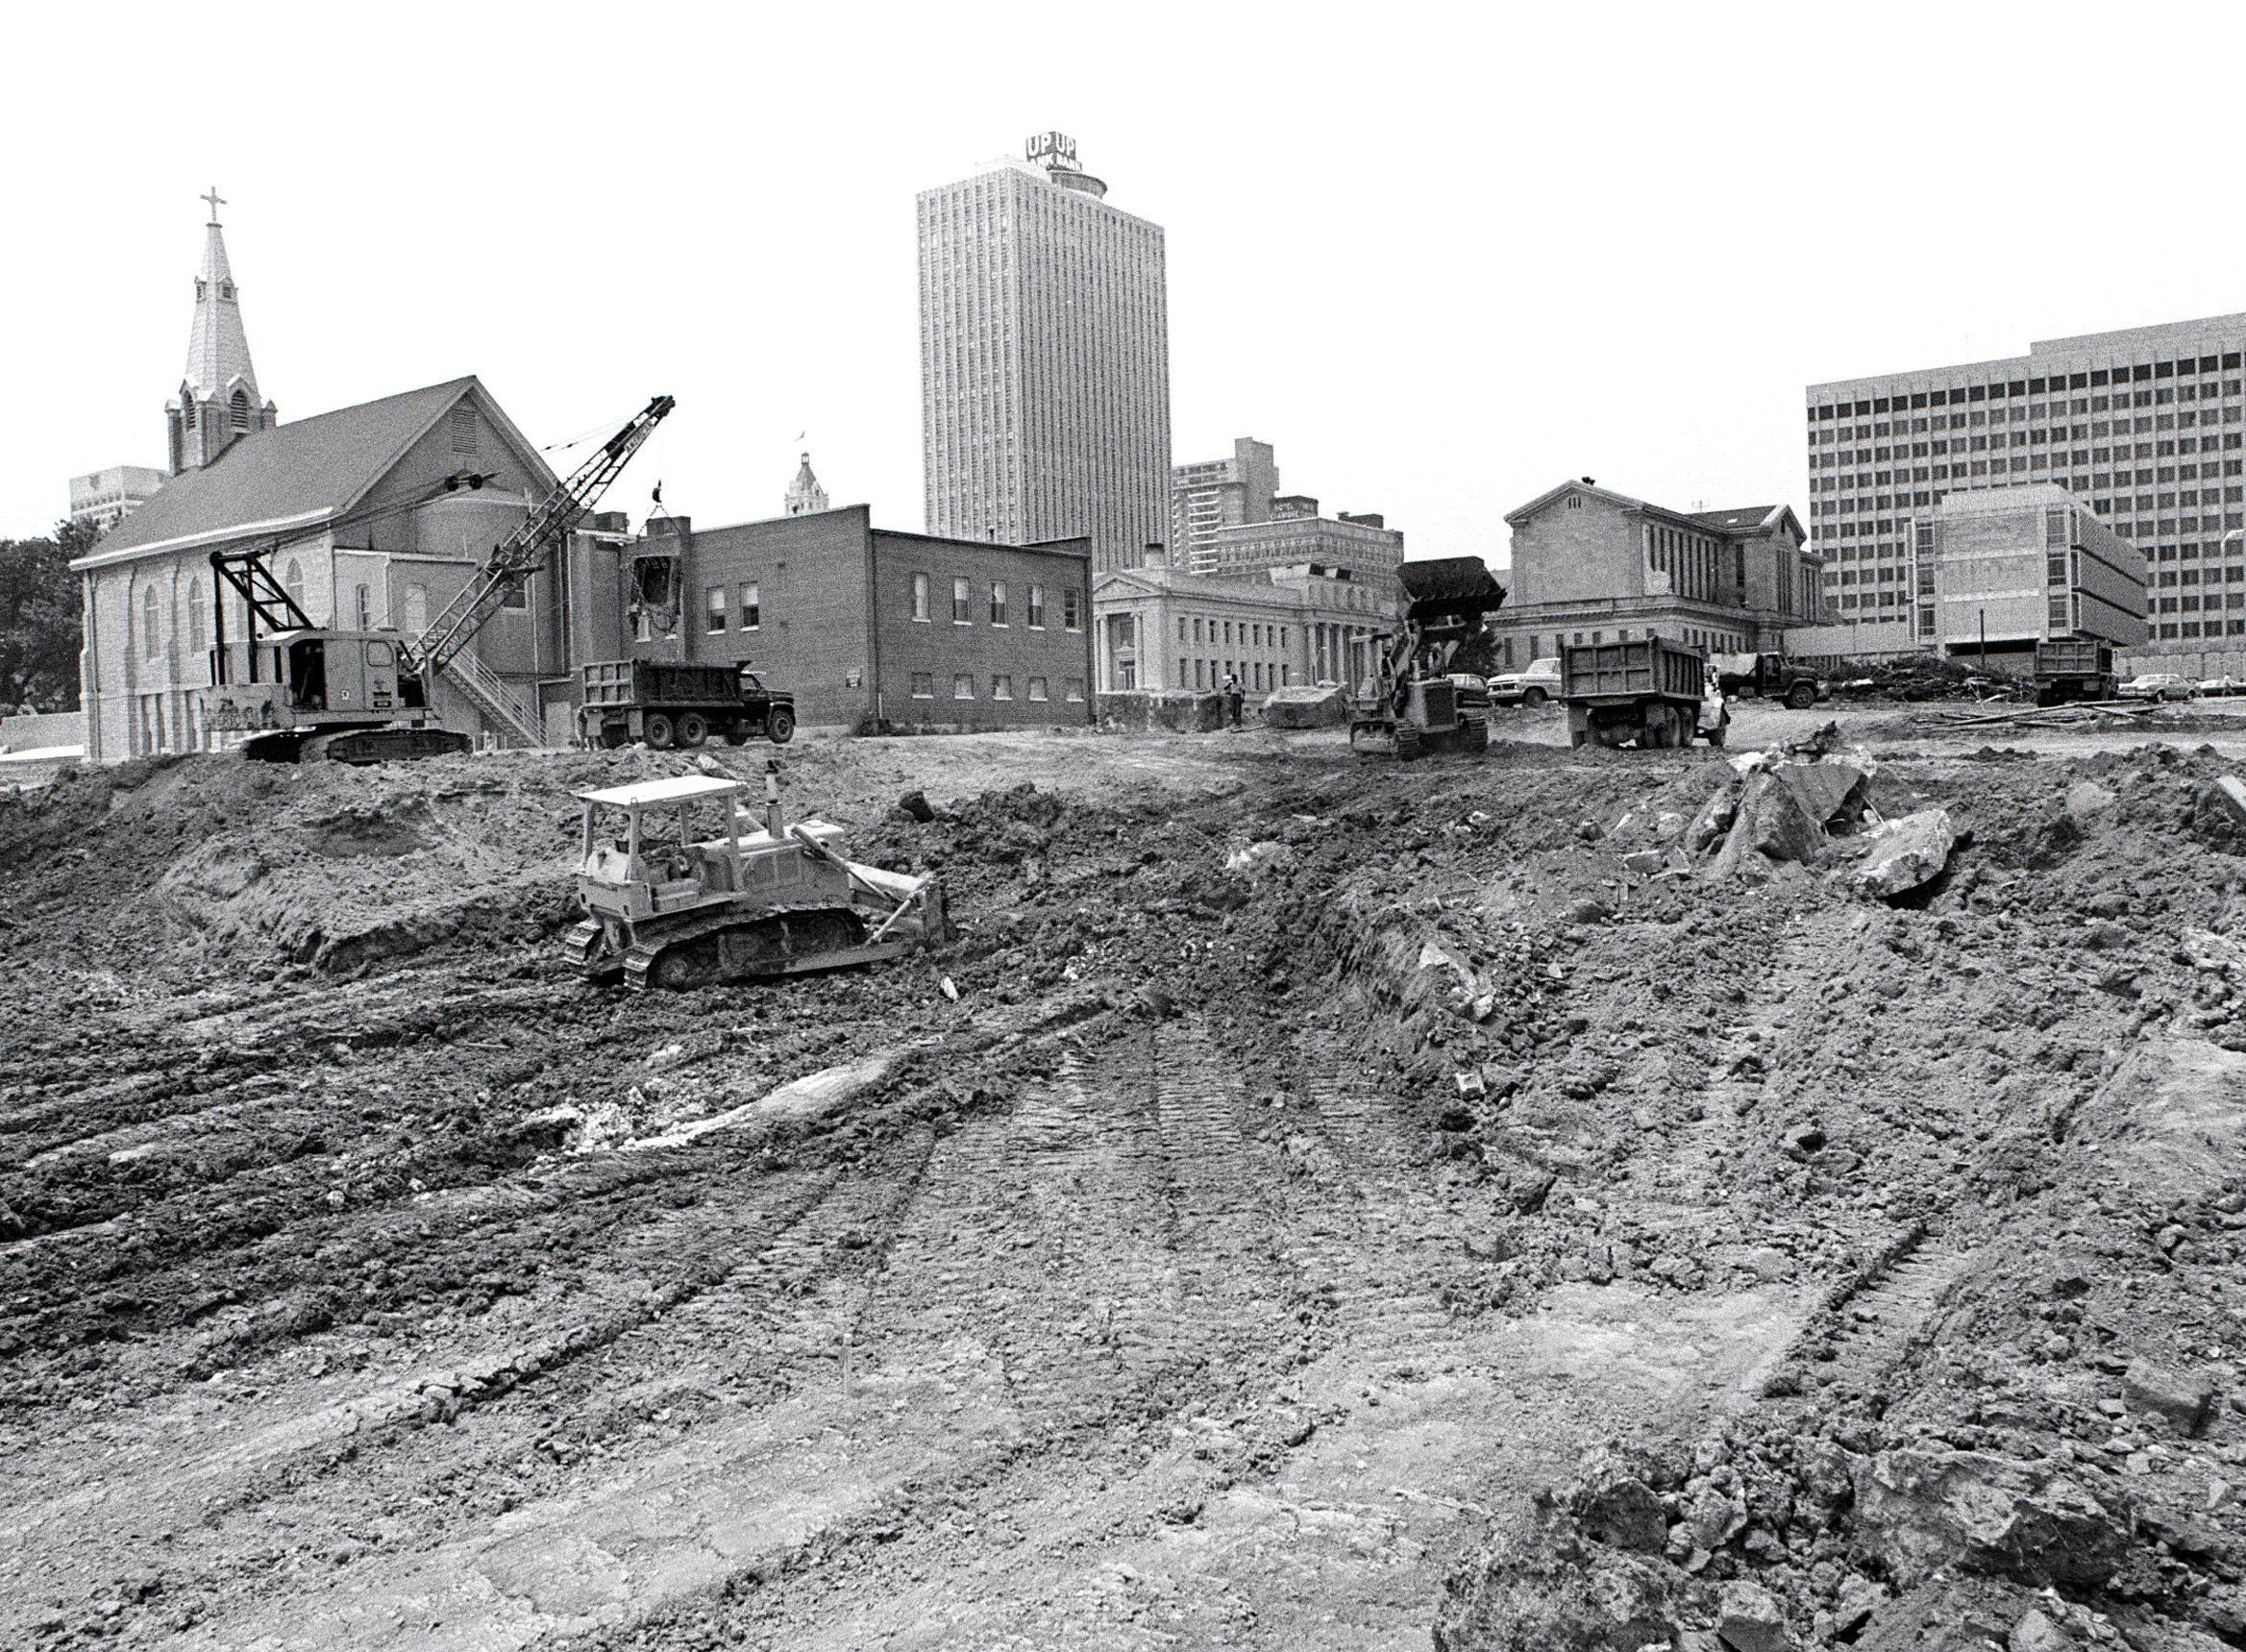 Excavation work is in full swing for the new $38.5 million Criminal Justice Complex at 201 Poplar Avenue on 5 July 1977 as seen in this view looking toward the southwest.  The center will include a 14-story court building and a 6-story detention center.  Groundbreaking occurred on 21 June, nine years after the project was first discussed.  It is expected to be completed in 24 to 30 months.  St. Peter's Catholic Church at 190 Adams Avenue is at far left.  Other buildings include (From Left) 100 North Main, the Shelby County Court House, the Shelby County Jail, the criminal courts building and the Shelby County Administration building.